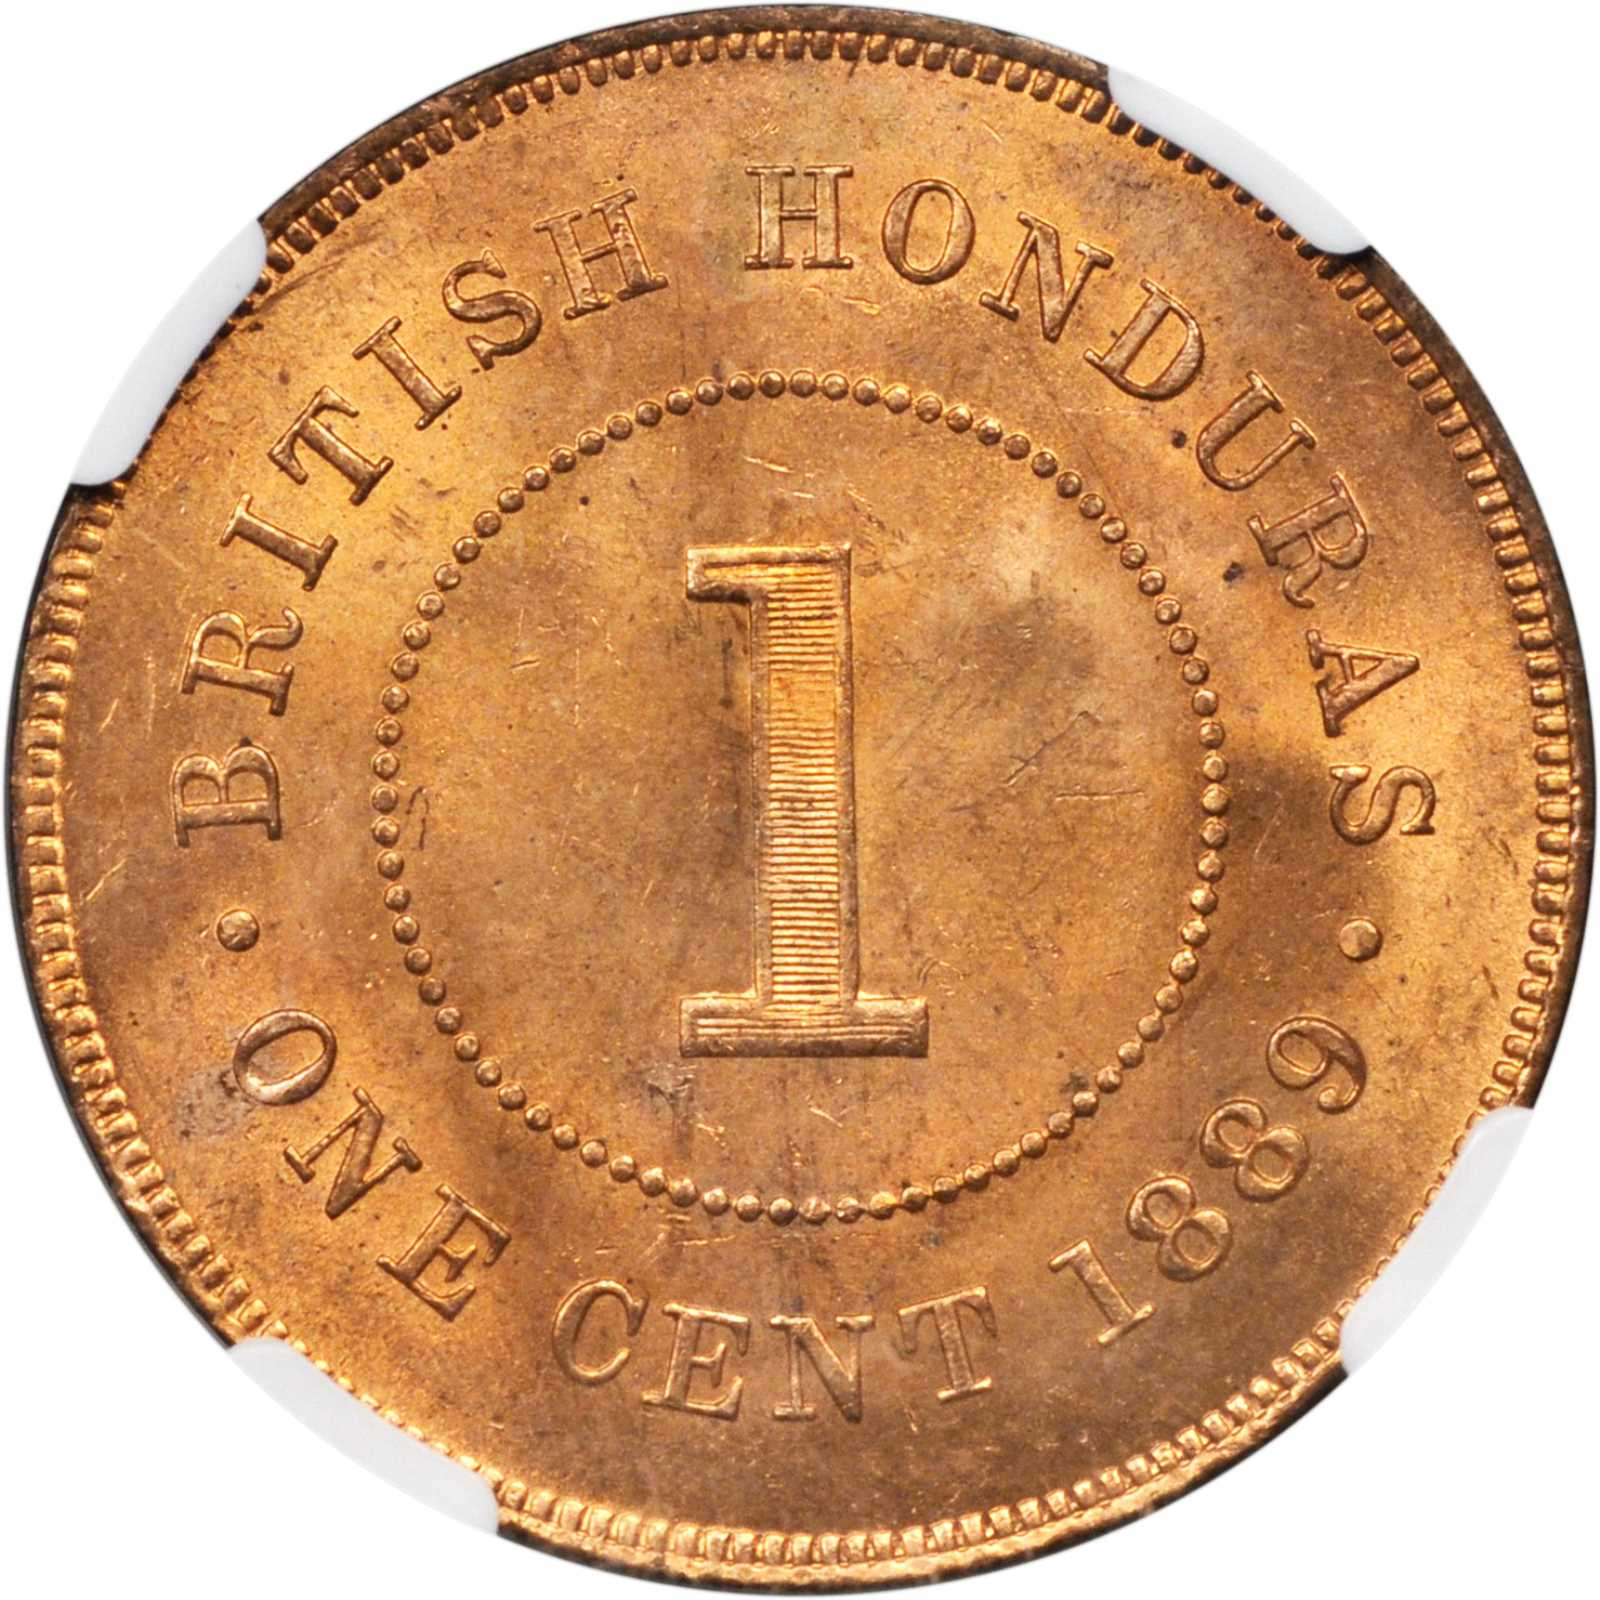 One Cent 1889: Photo British Honduras 1889 cent